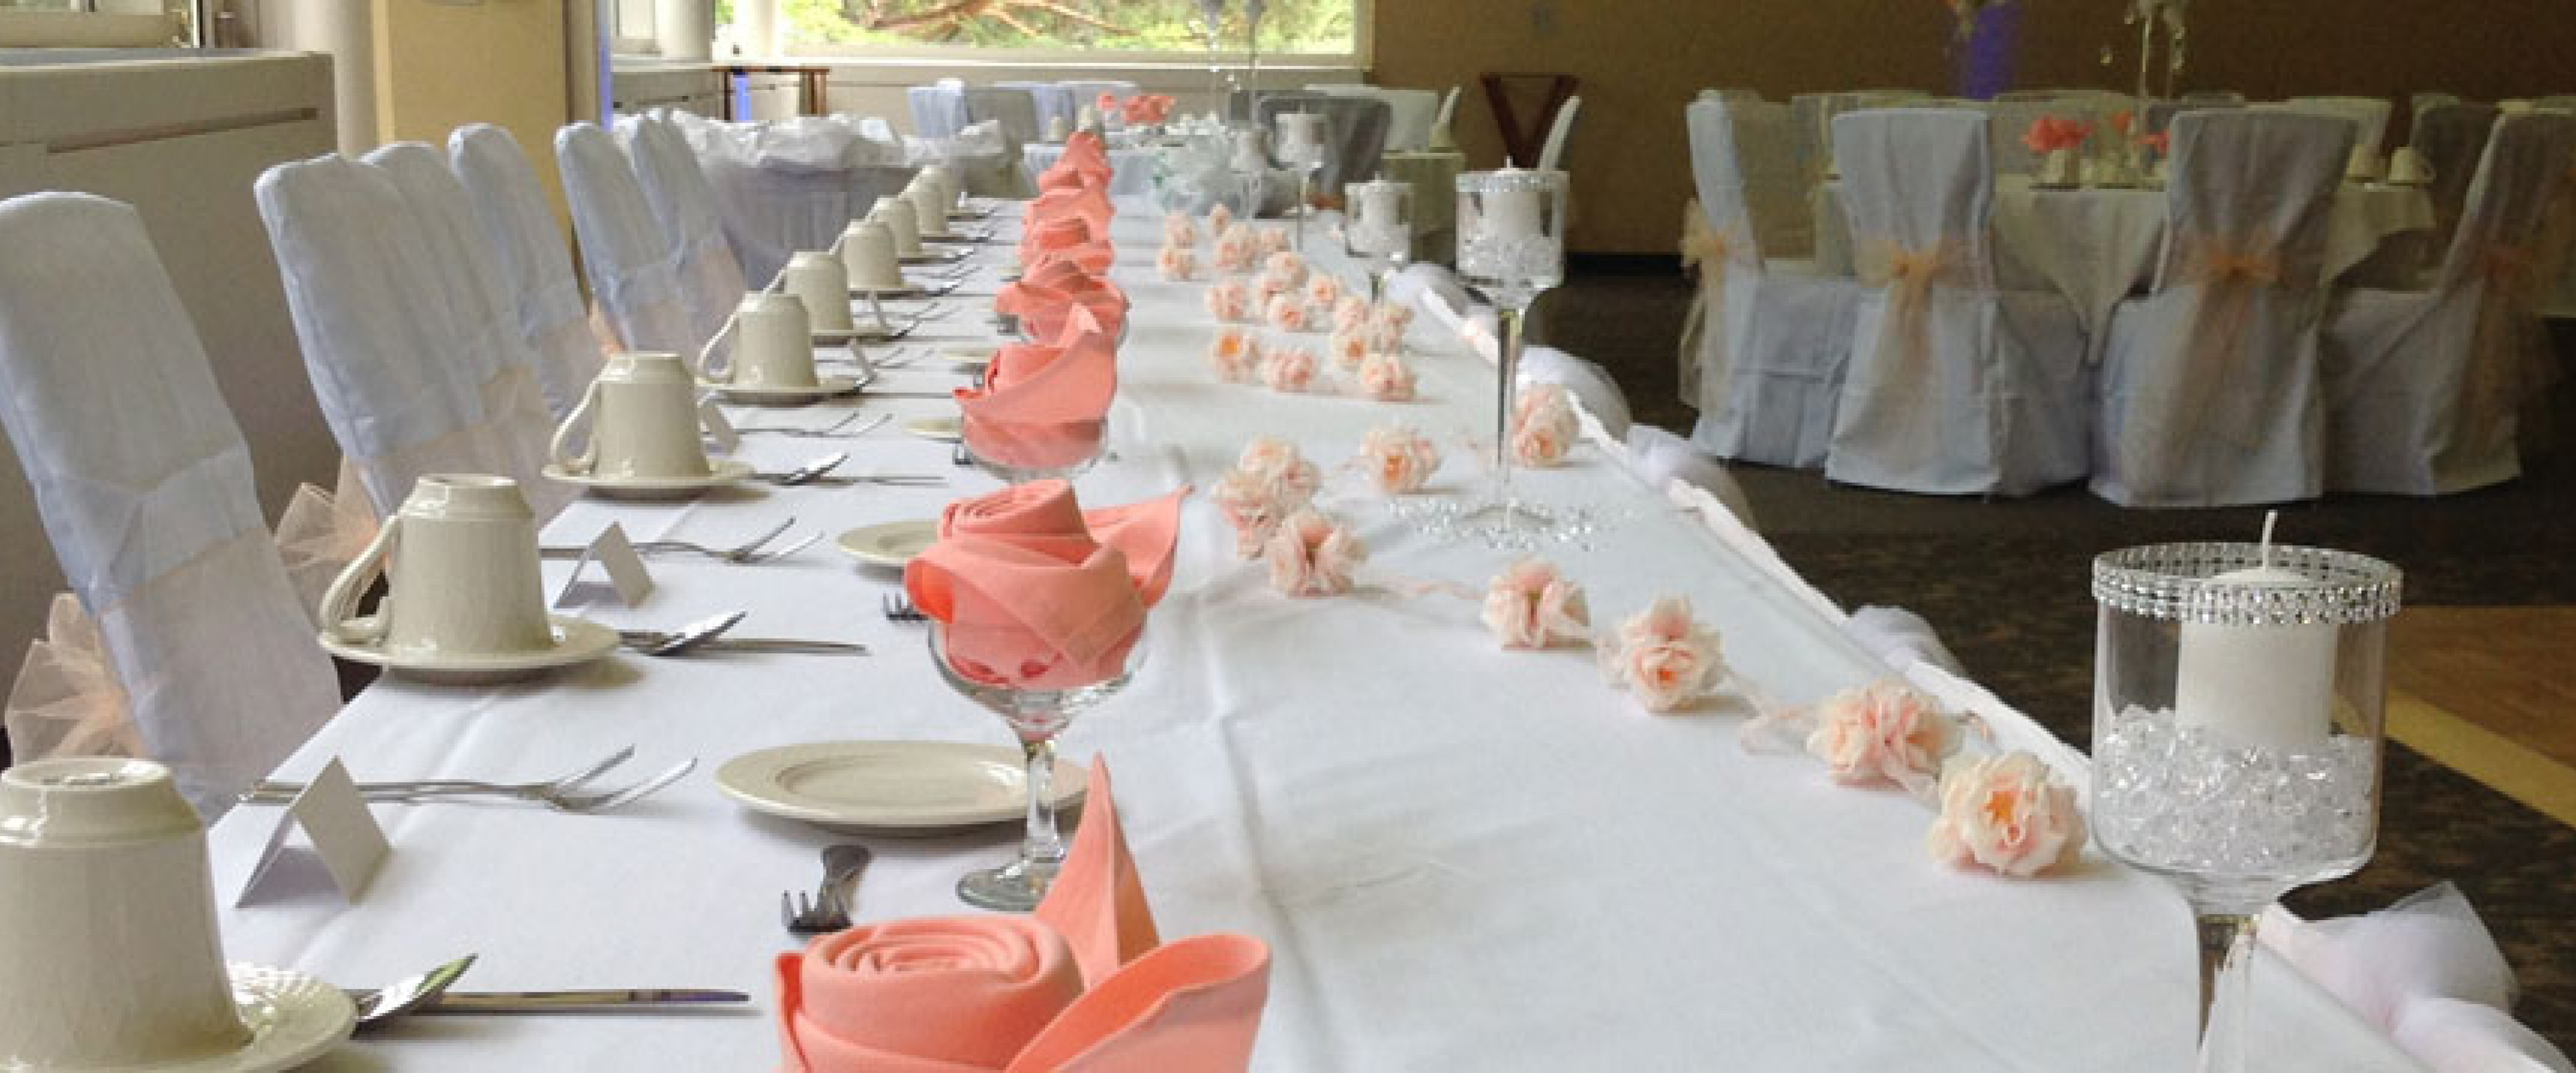 Long front table with white linens and orange napkins in a rose folder inside a wine glass